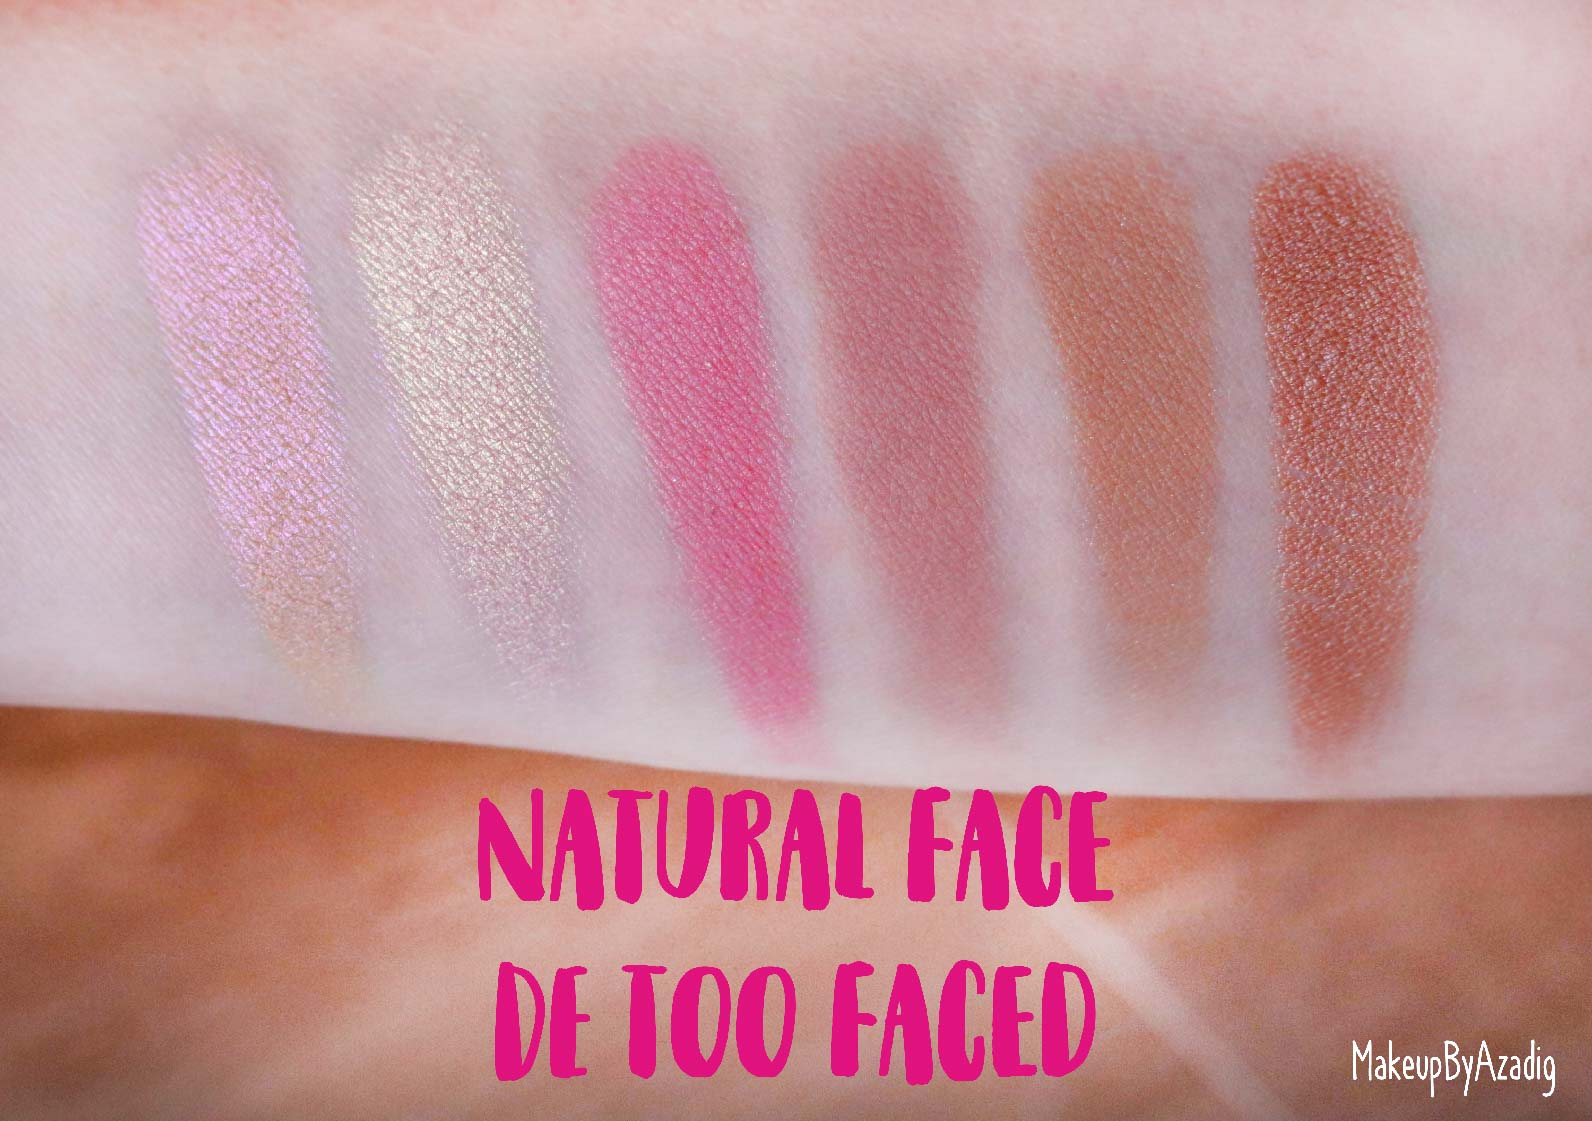 revue-review-palette-teint-natural-face-too-faced-makeupbyazadig-sephora-france-avis-prix-swatch-blush-highlighter-swatches-2